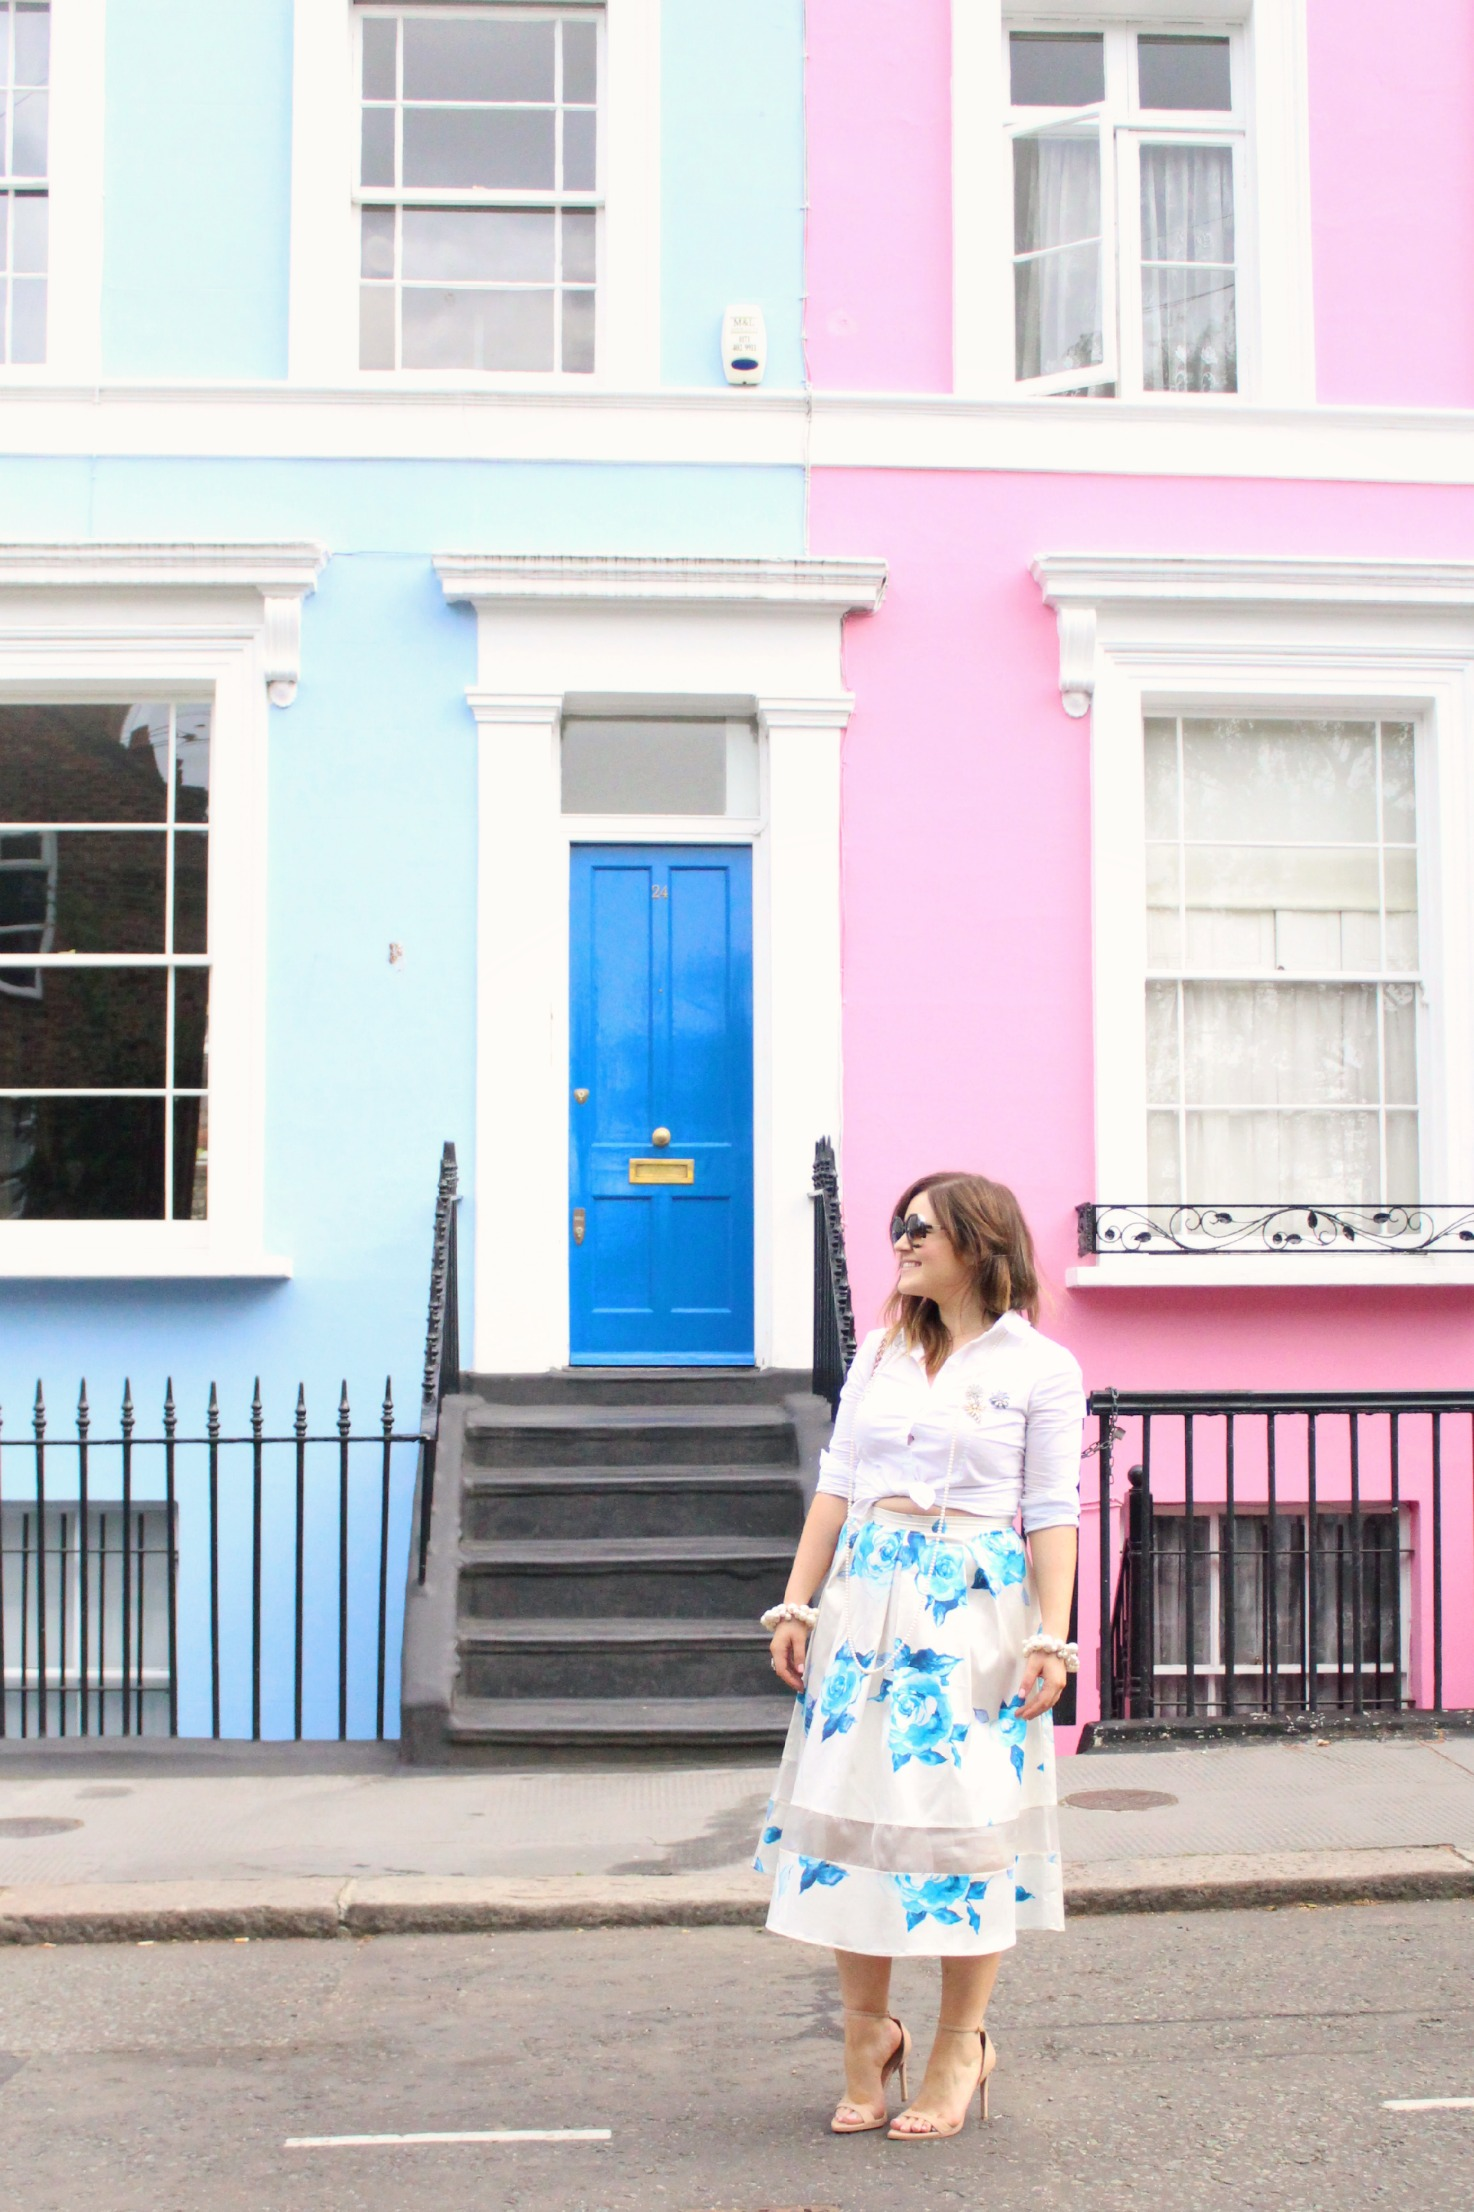 A Girl, A Style _ Pastel Streets in Notting Hill